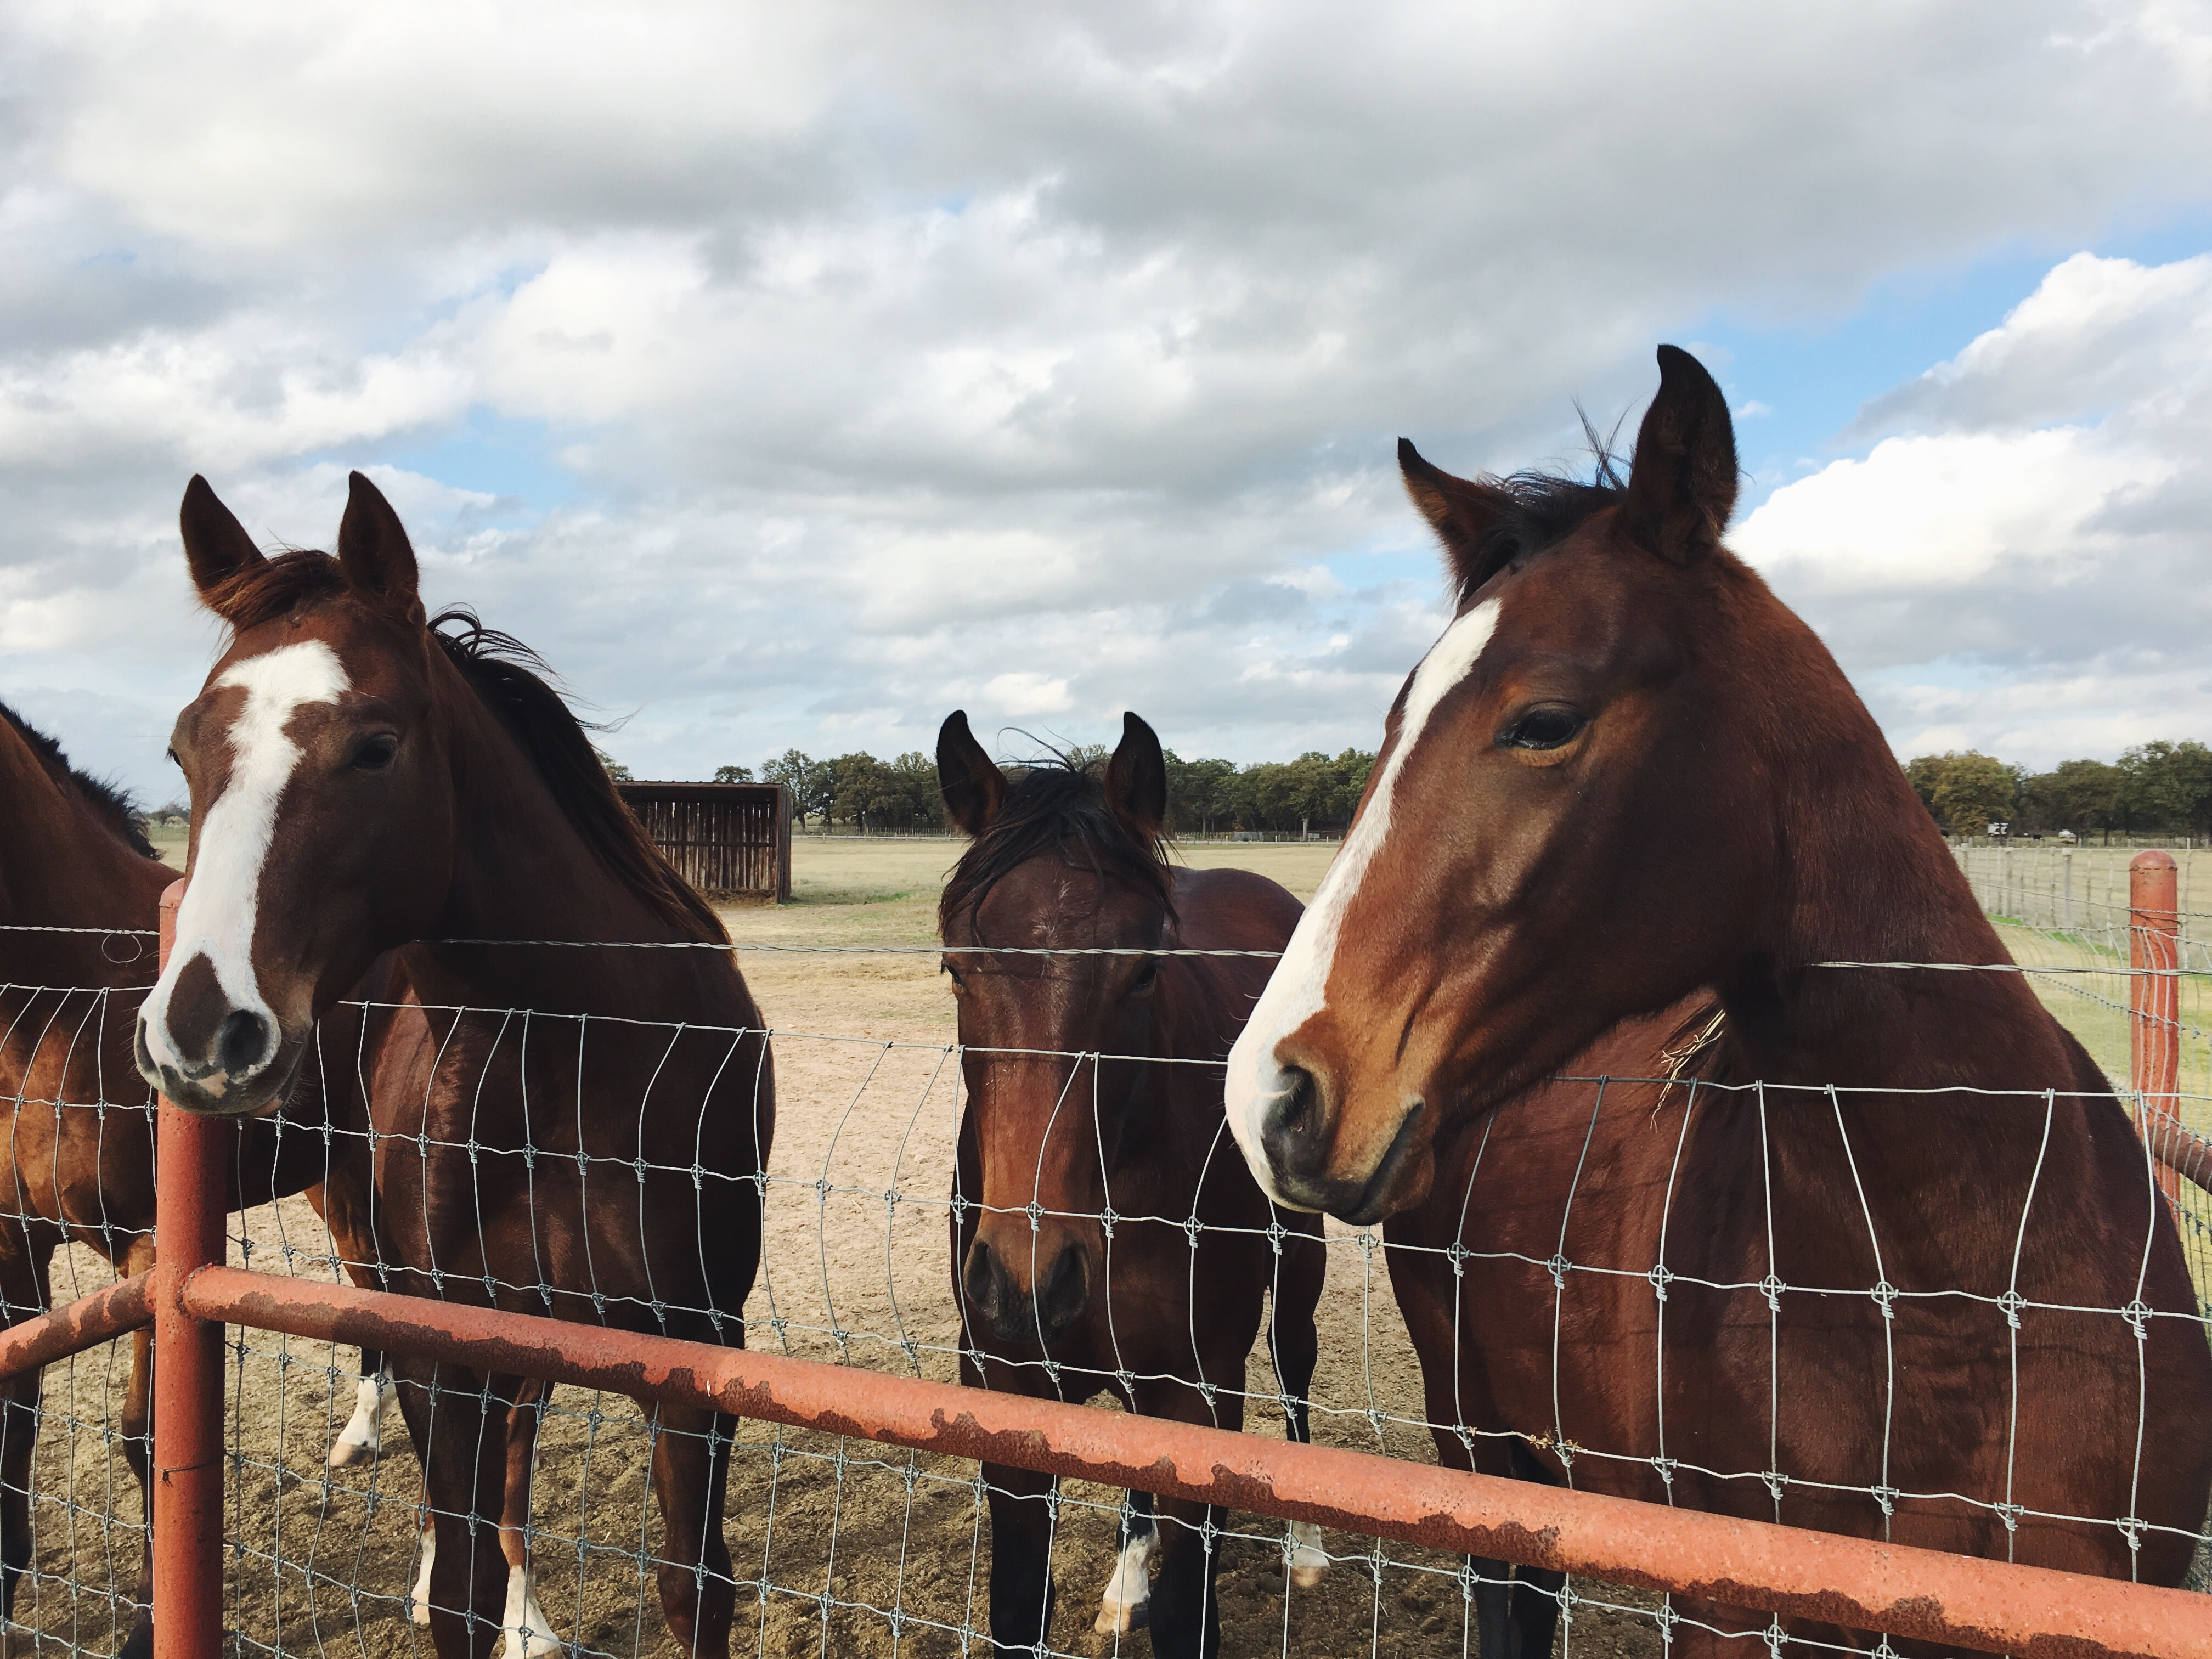 A group of dark bay horses with their heads over a wire fence